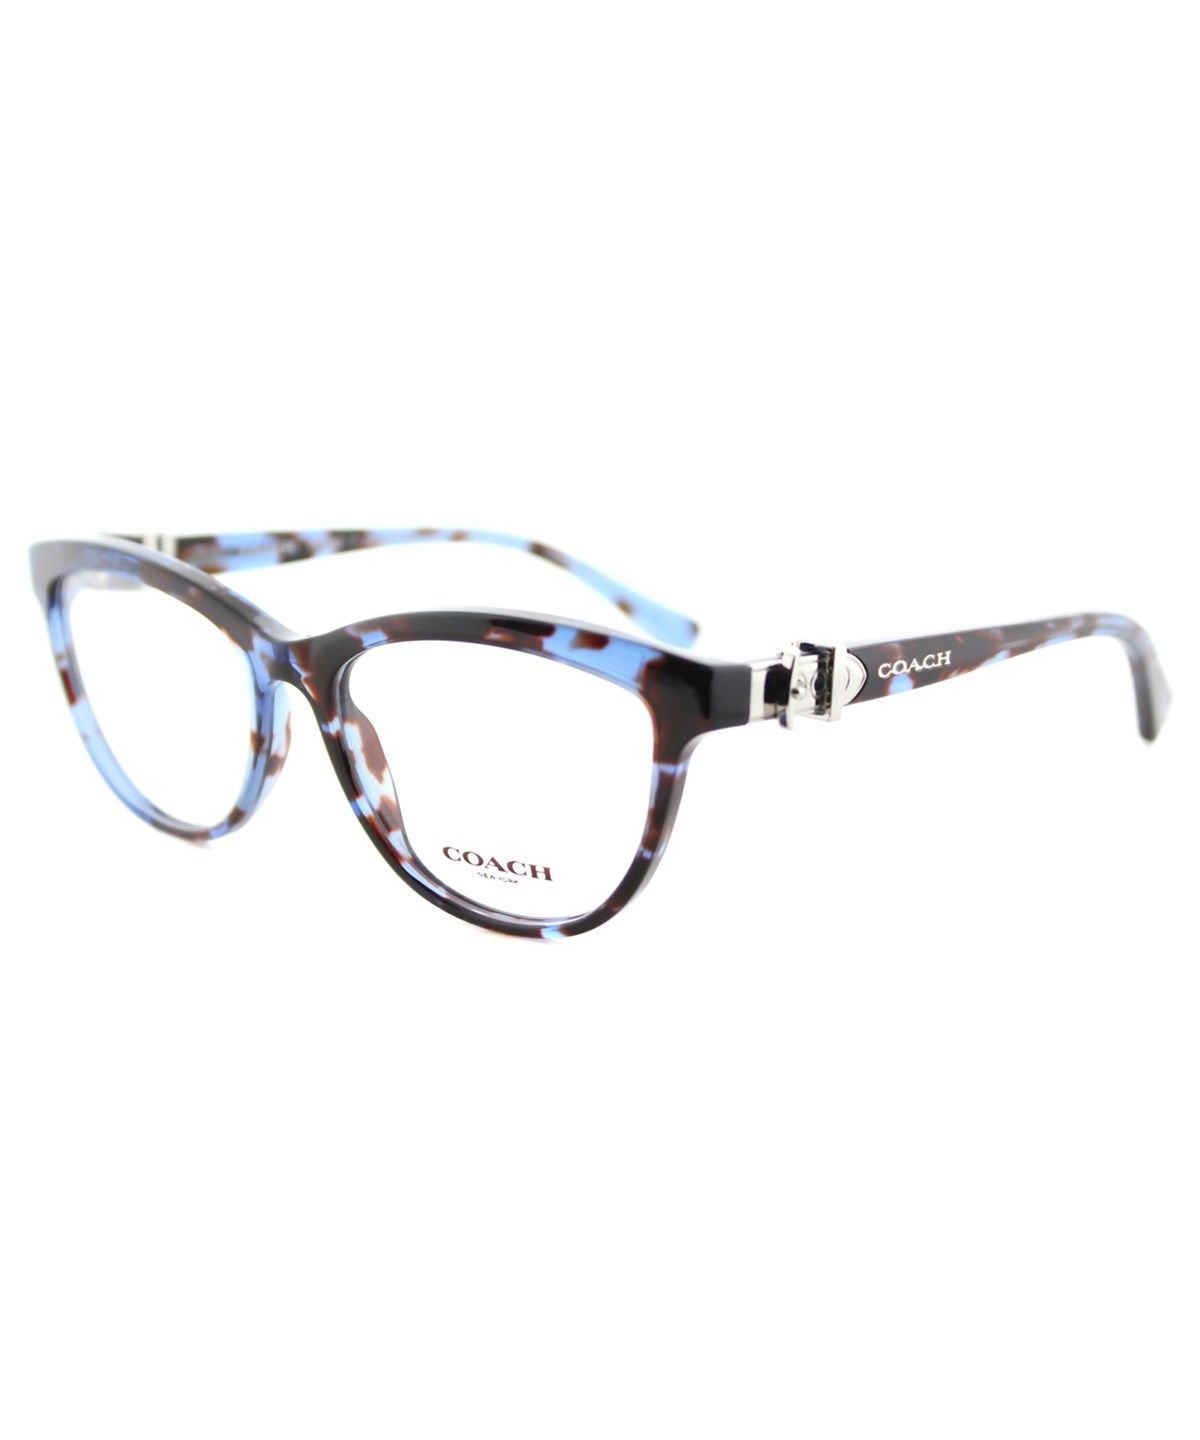 cabe424f219 COACH Cat-Eye Plastic Eyeglasses .  coach  eyeglasses